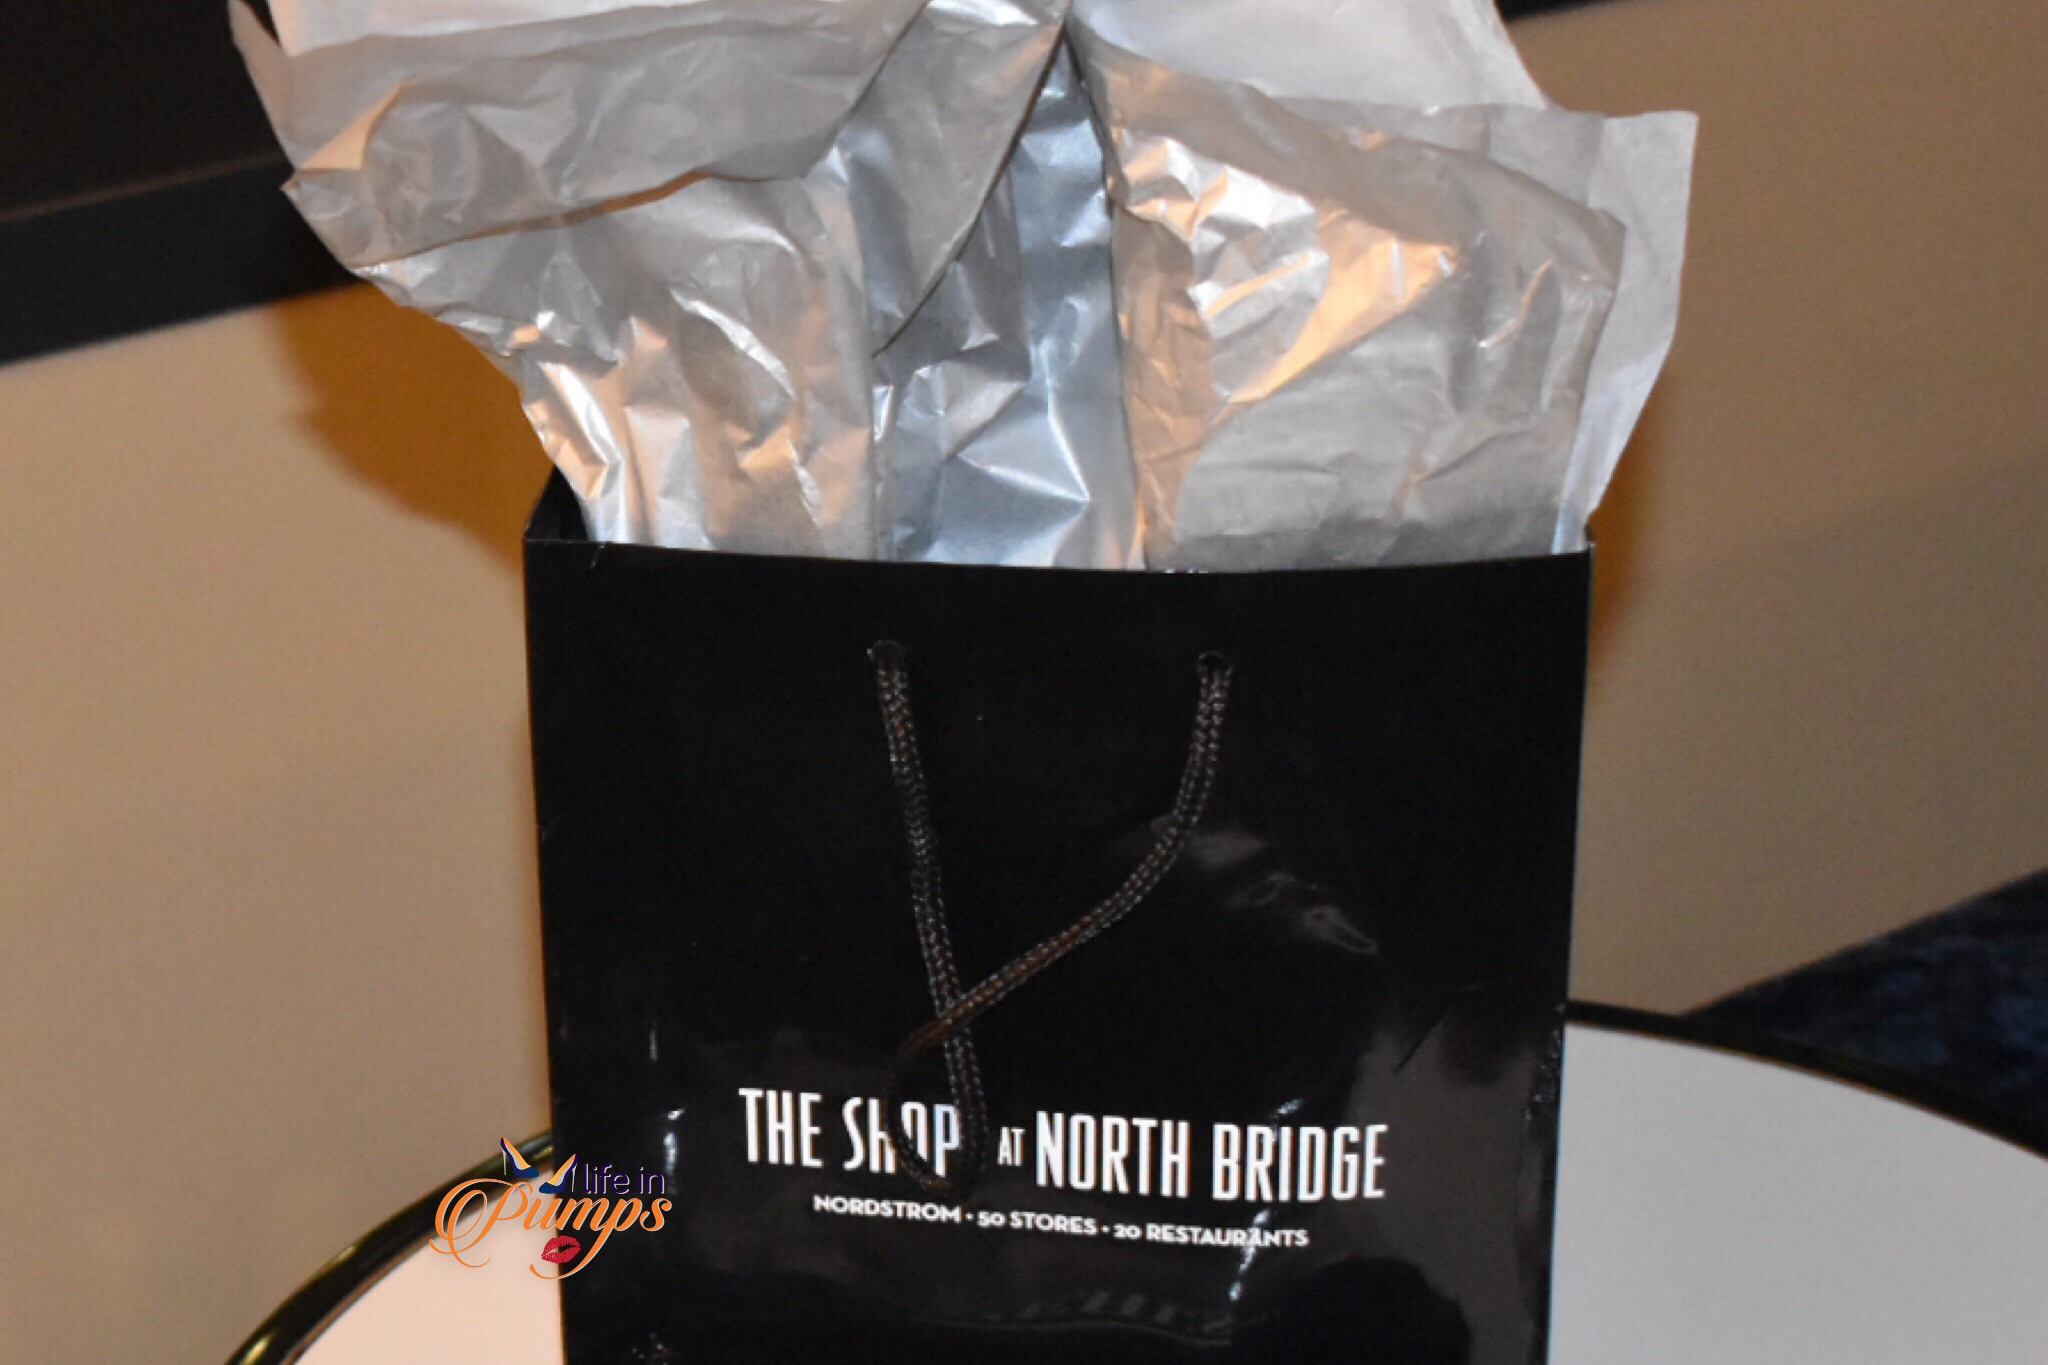 SHops at North Bridge bag, #LifeinPumps, #Choosechicago